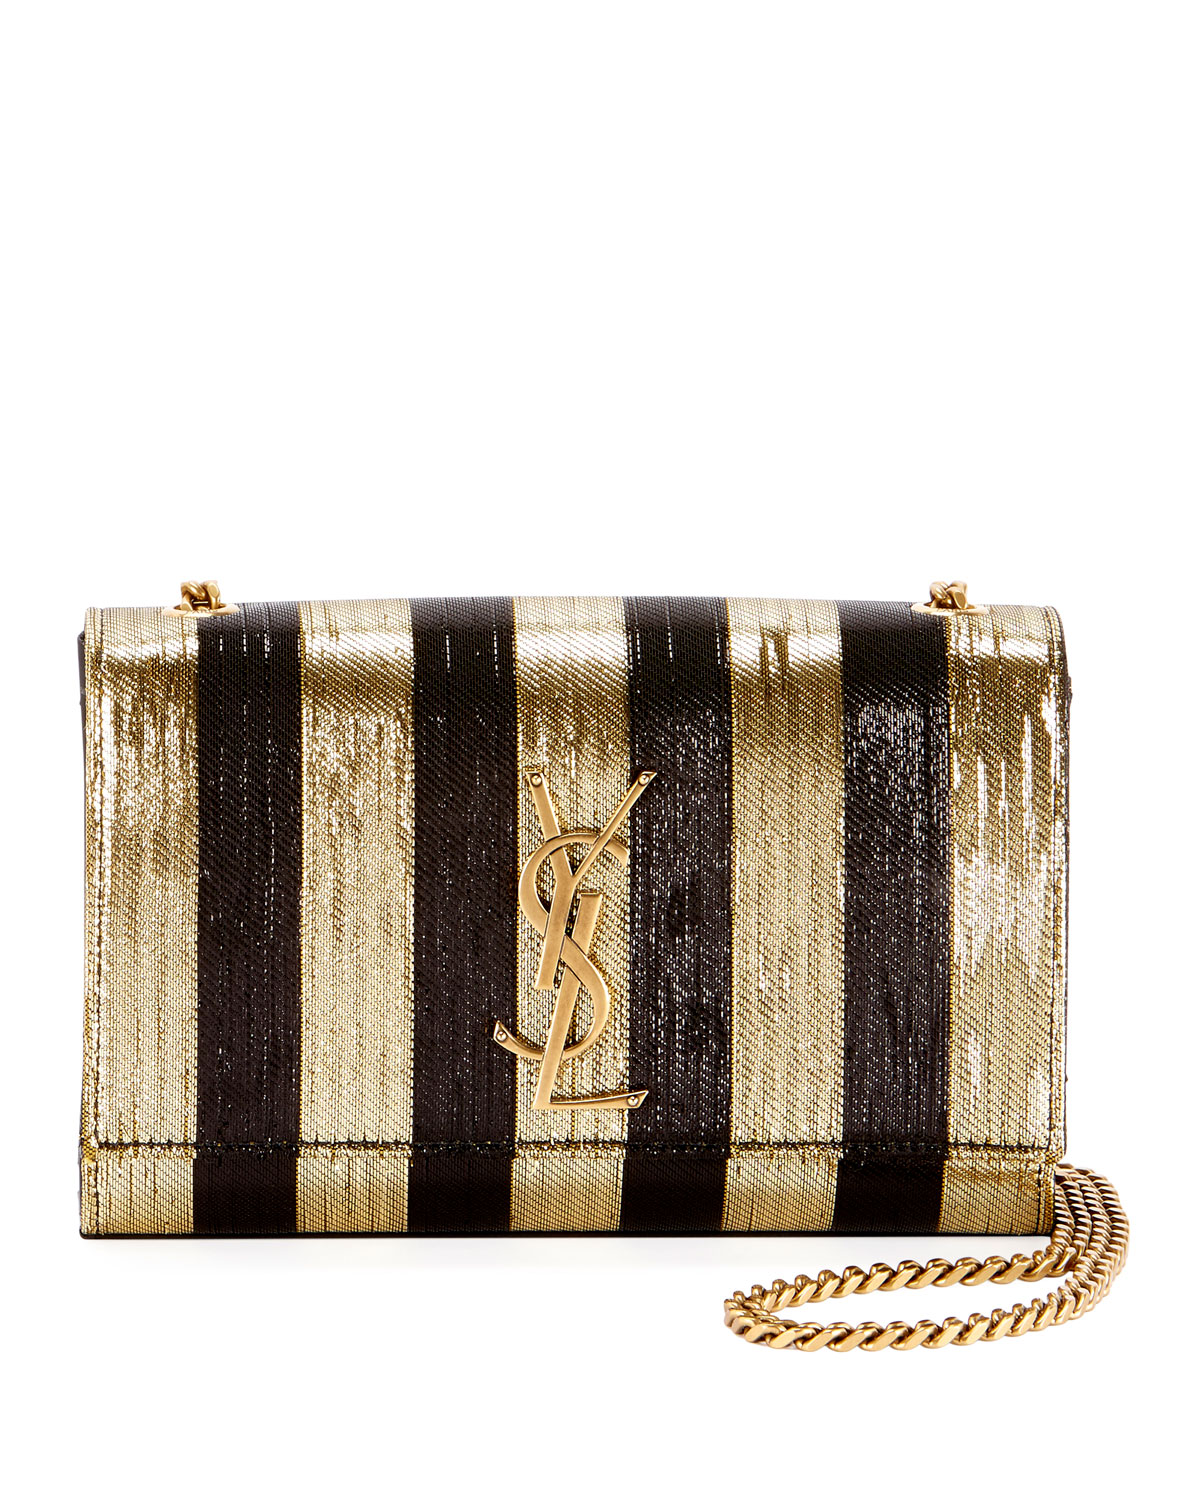 Saint Laurent Kate Monogram Ysl Small Metallic Striped